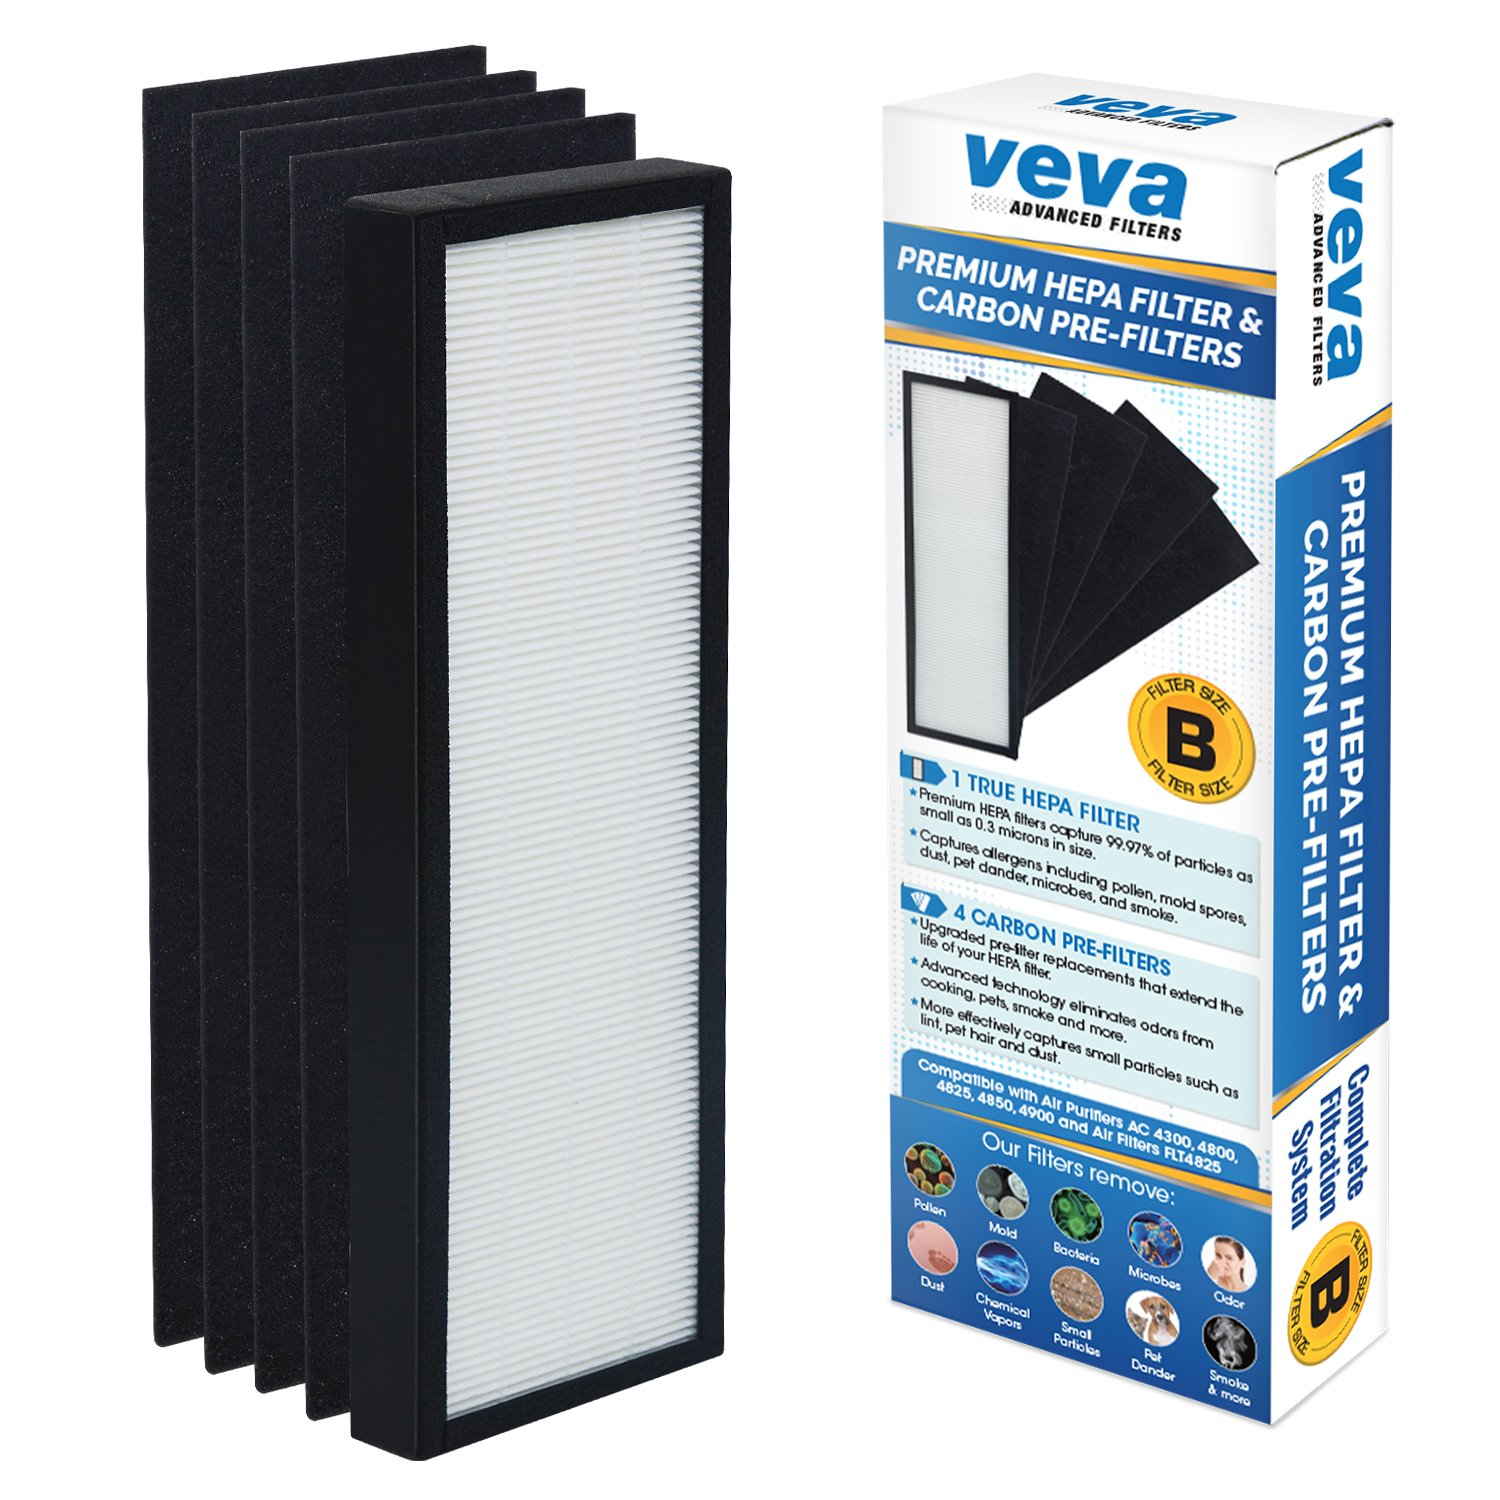 VEVA Premium True HEPA Replacement Filter Including 4 Activated Carbon Pre Filters compatible with Air Purifier AC4300/AC4800/AC4900/AC4825 and FLT4825 Filter B